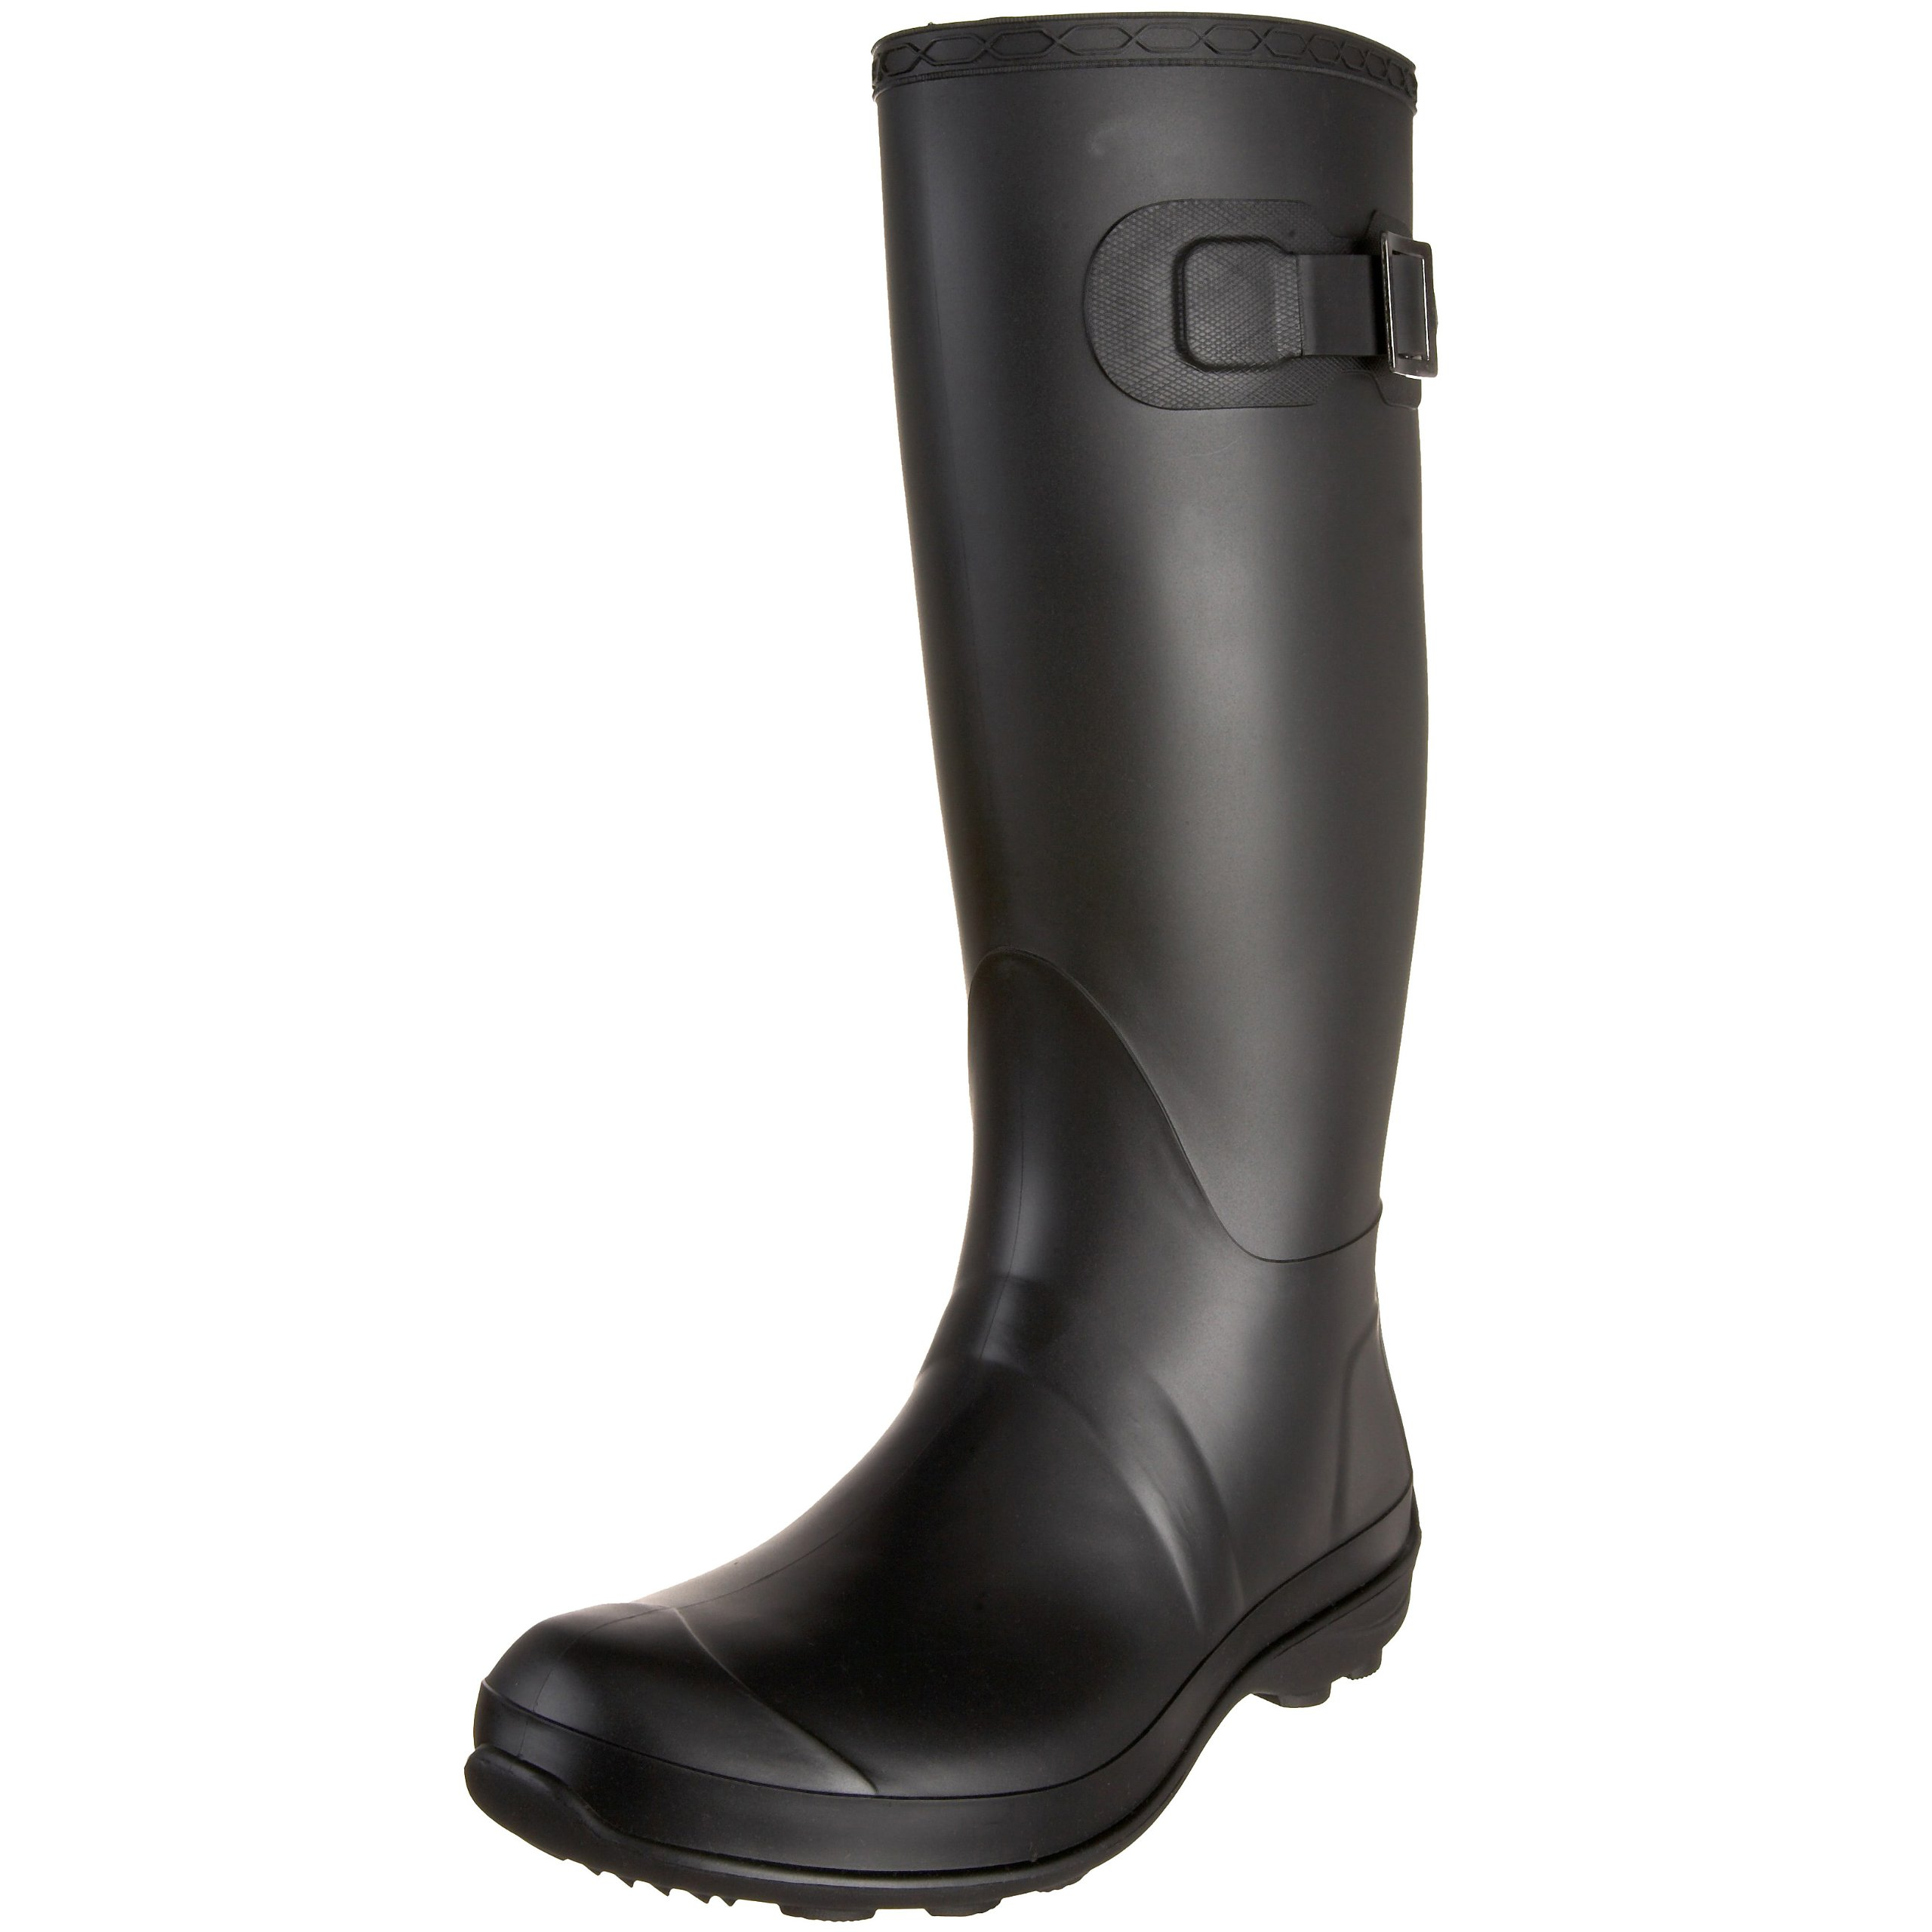 Kamik Women's Olivia Rain Boot,Black,9 M US